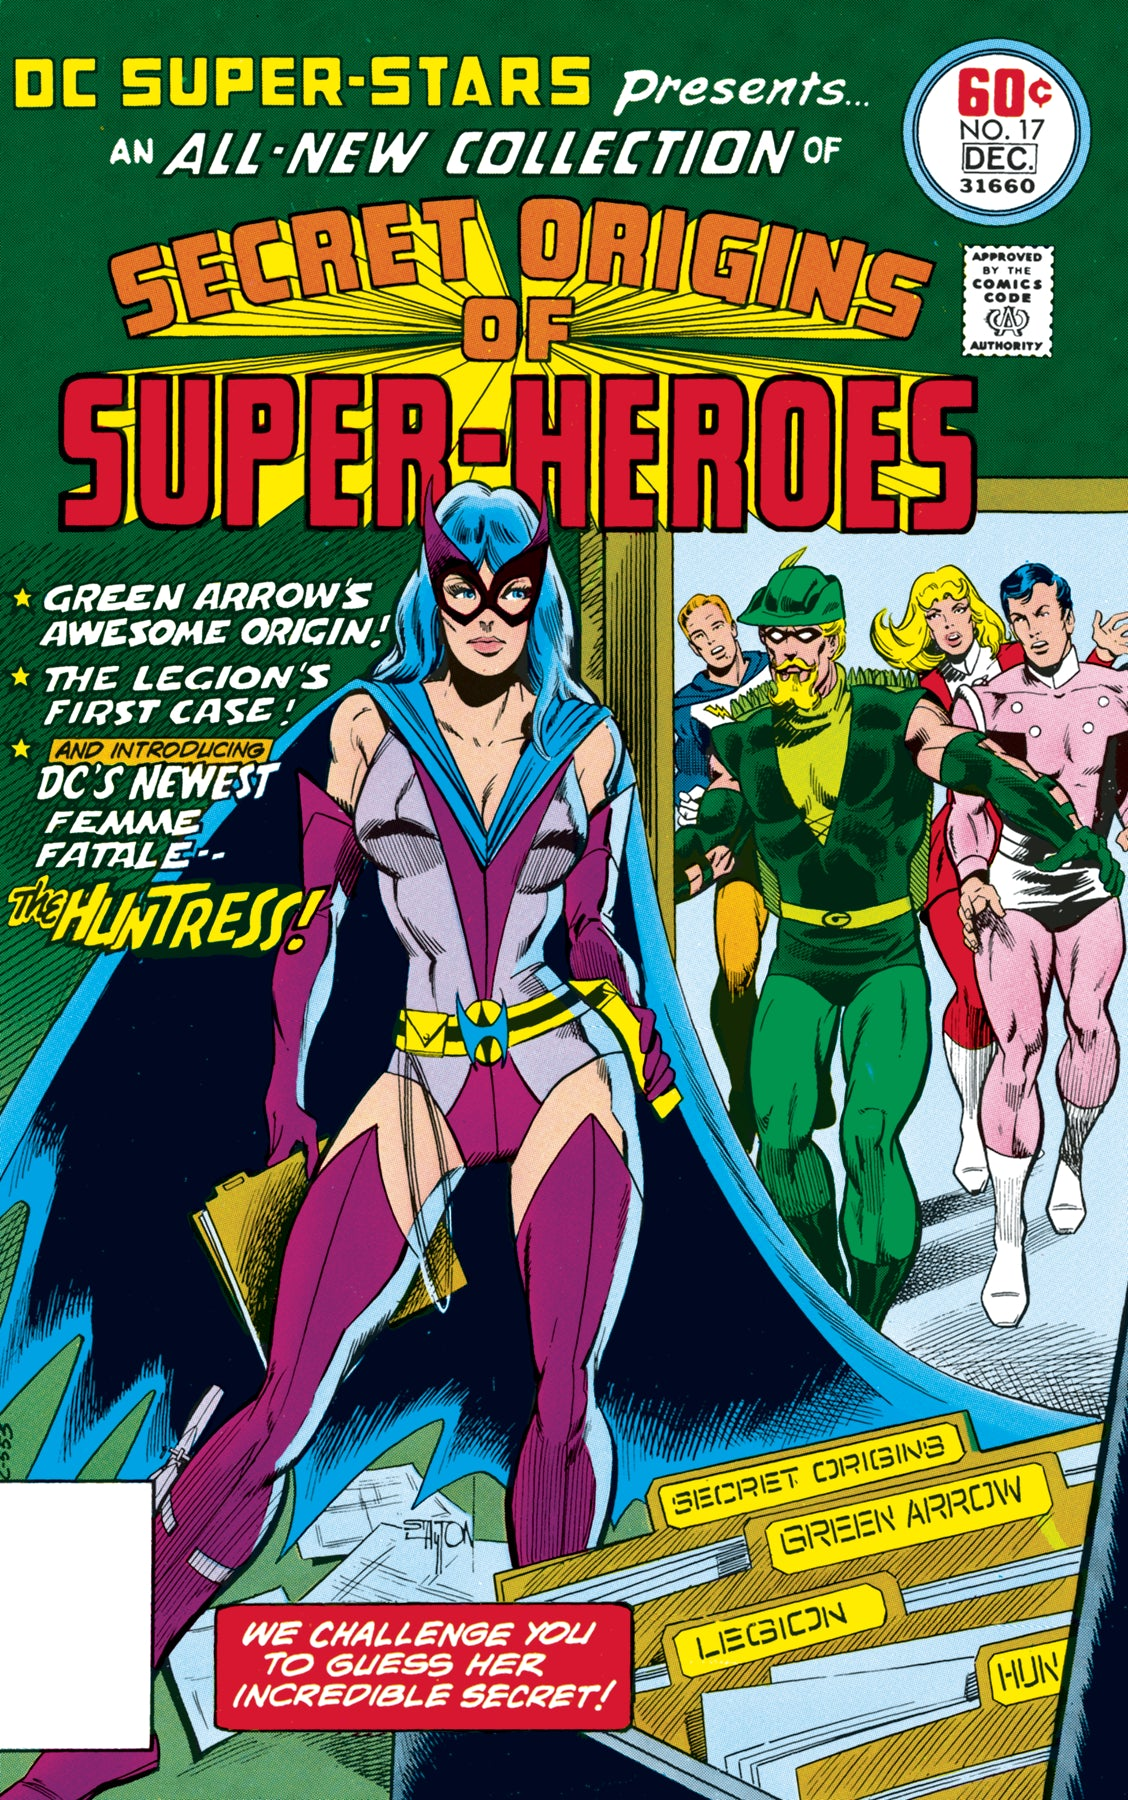 DC SUPER STARS #17 FACSIMILE EDITION | Game Master's Emporium (The New GME)